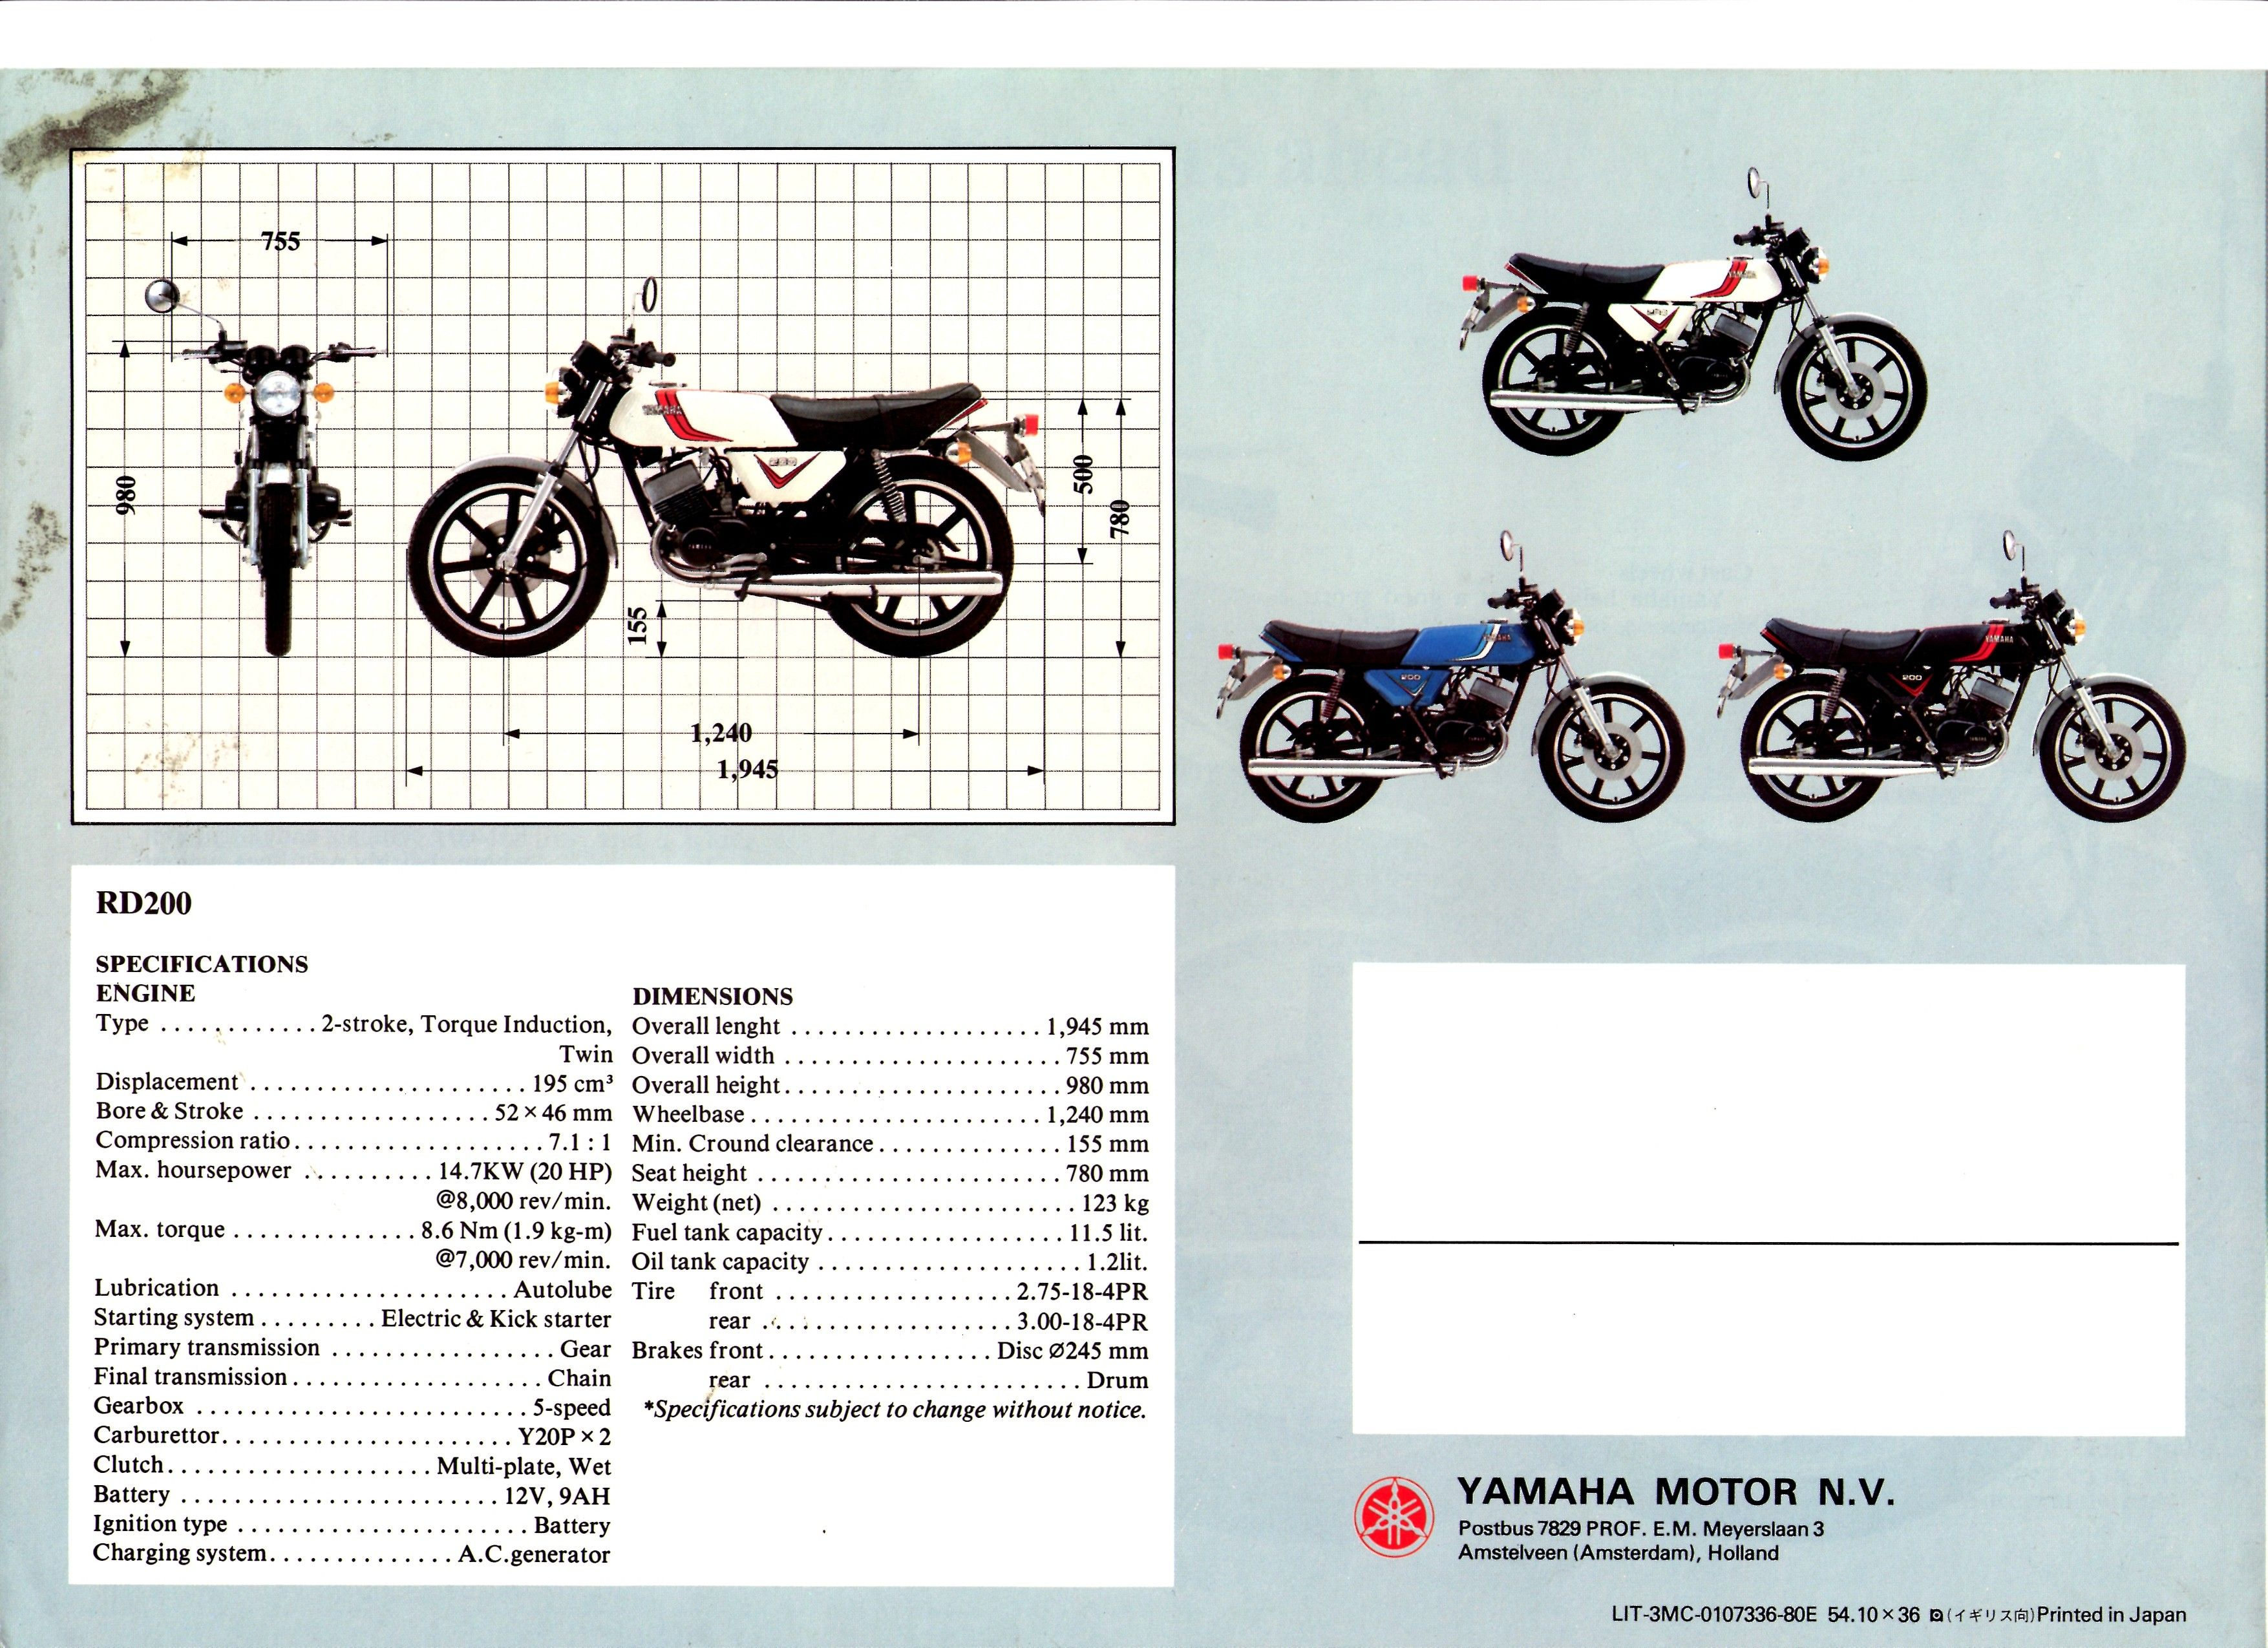 1980 Yamaha RD200 Specs 1 | My Motorcycle Pic Review | Motorcycle